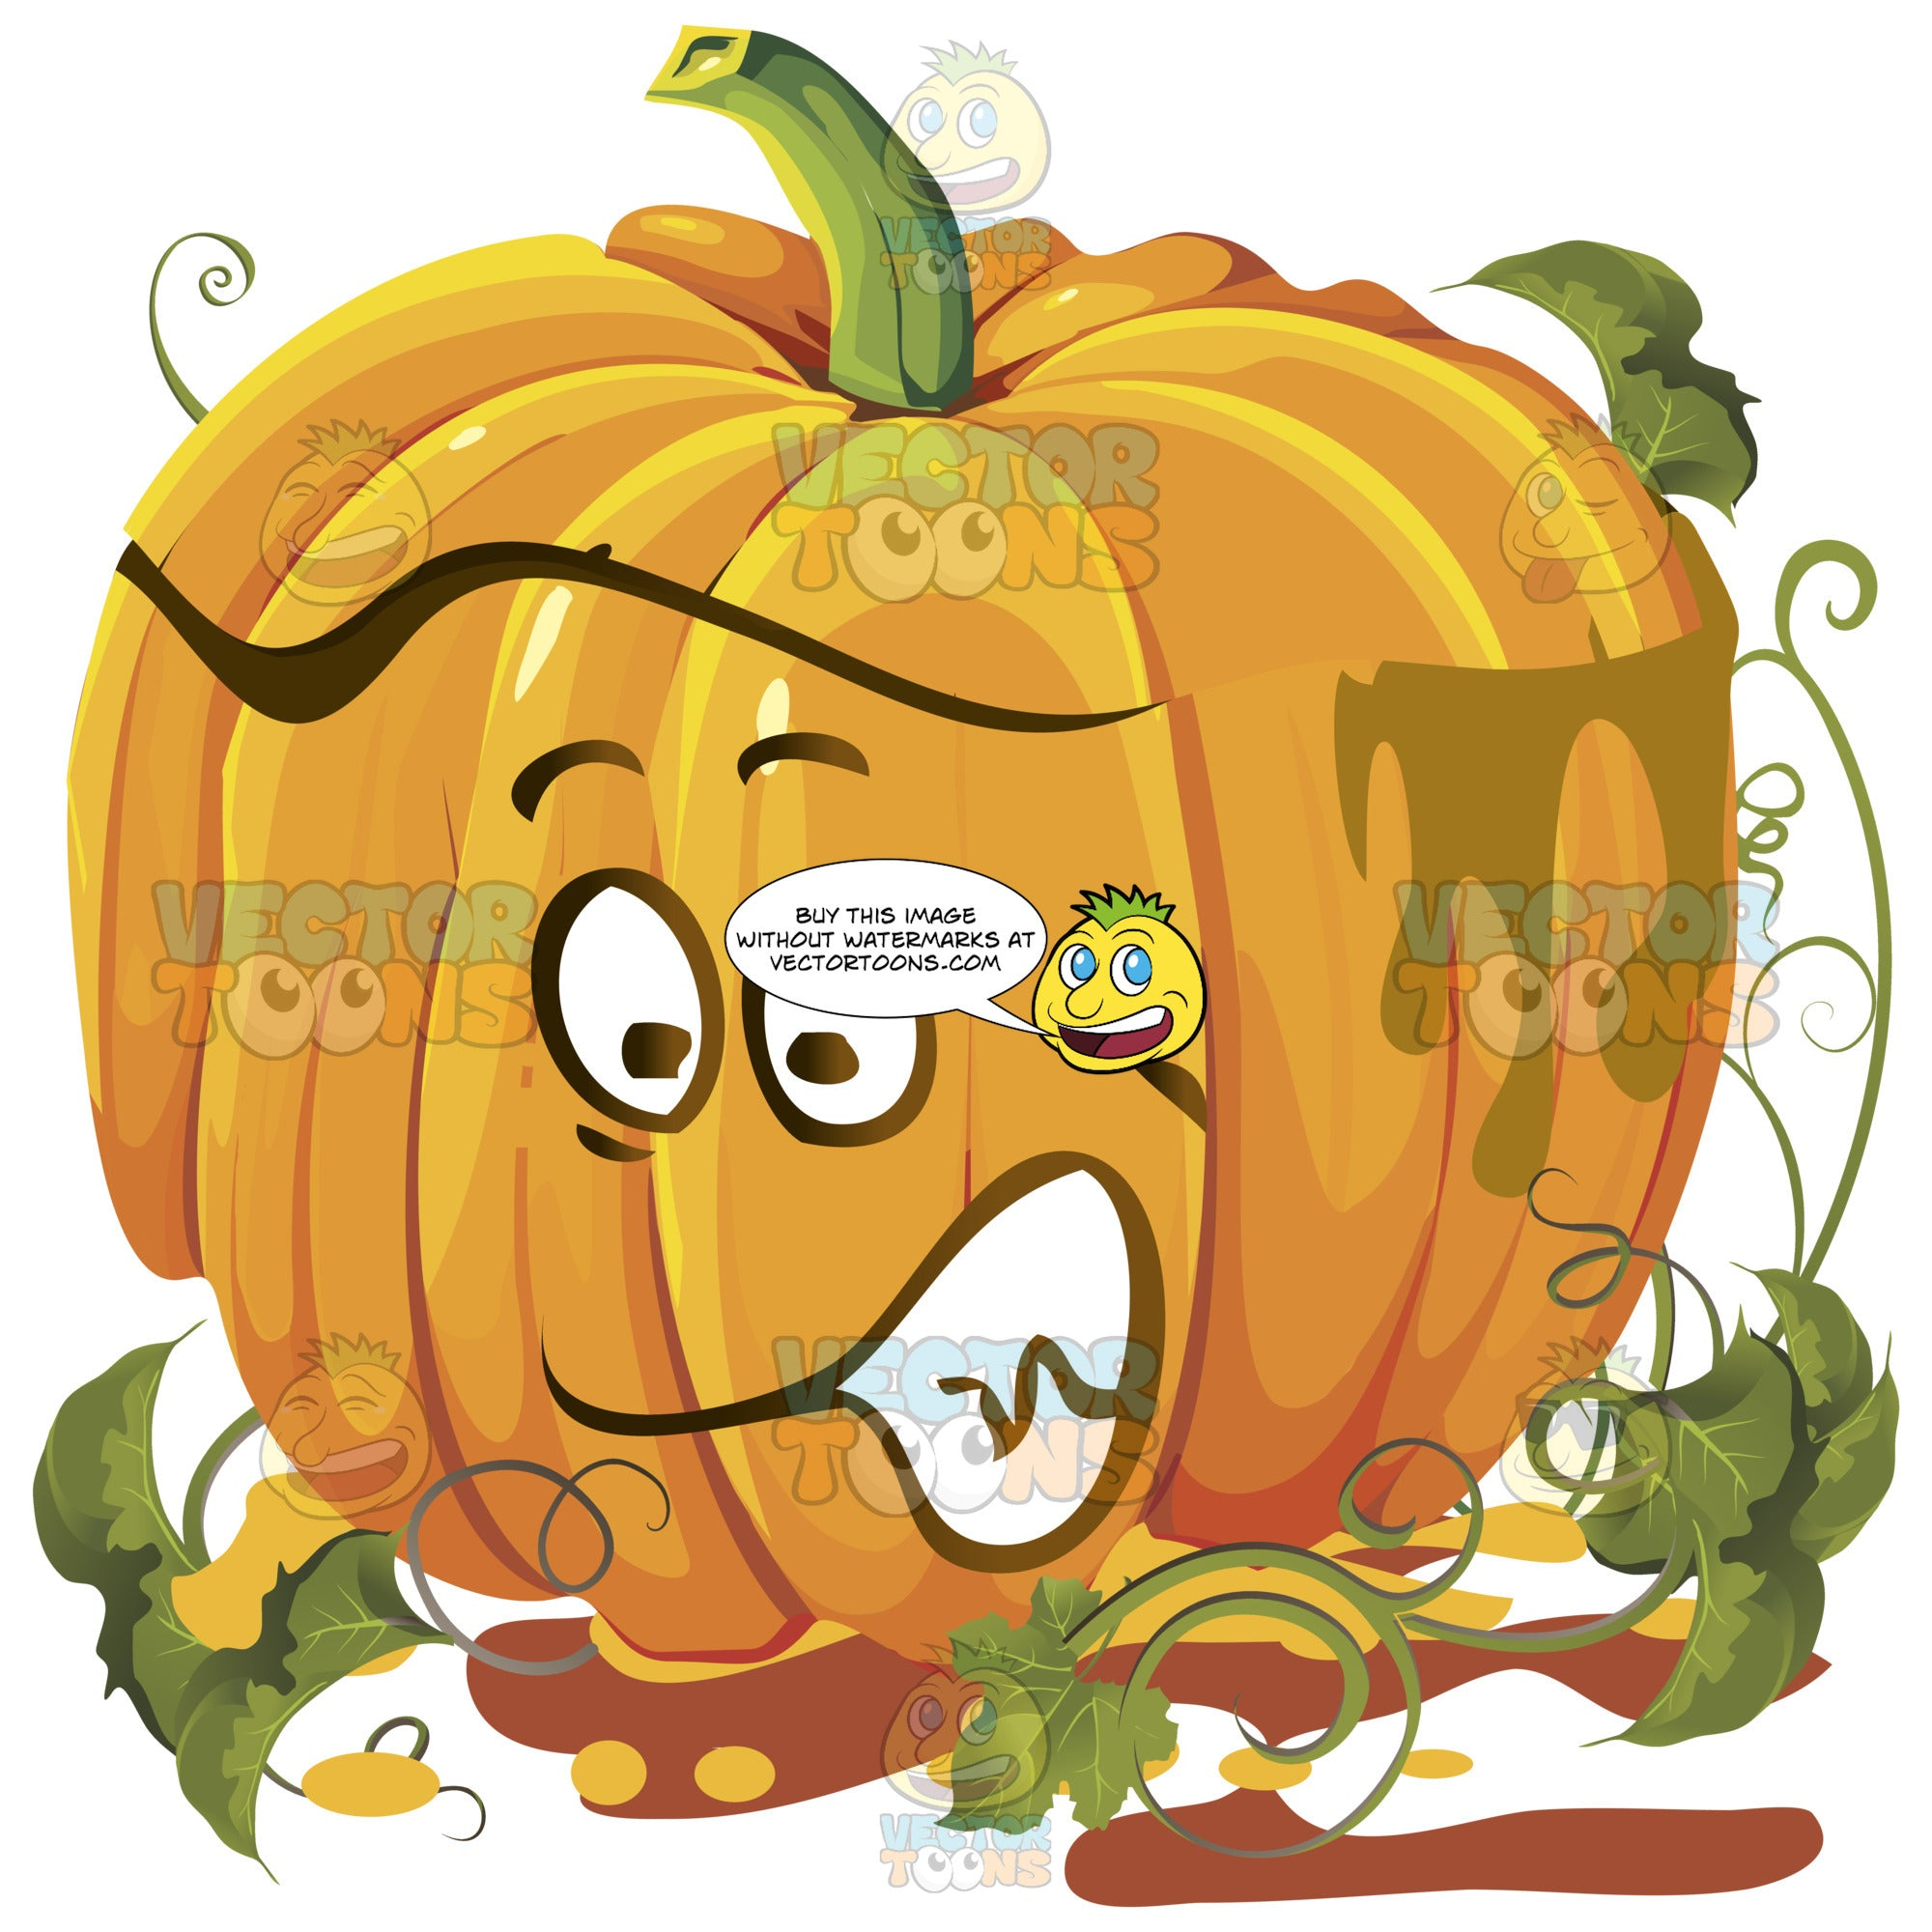 Orange Pumpkin Face With Green Vines Gritting Teeth, Determined